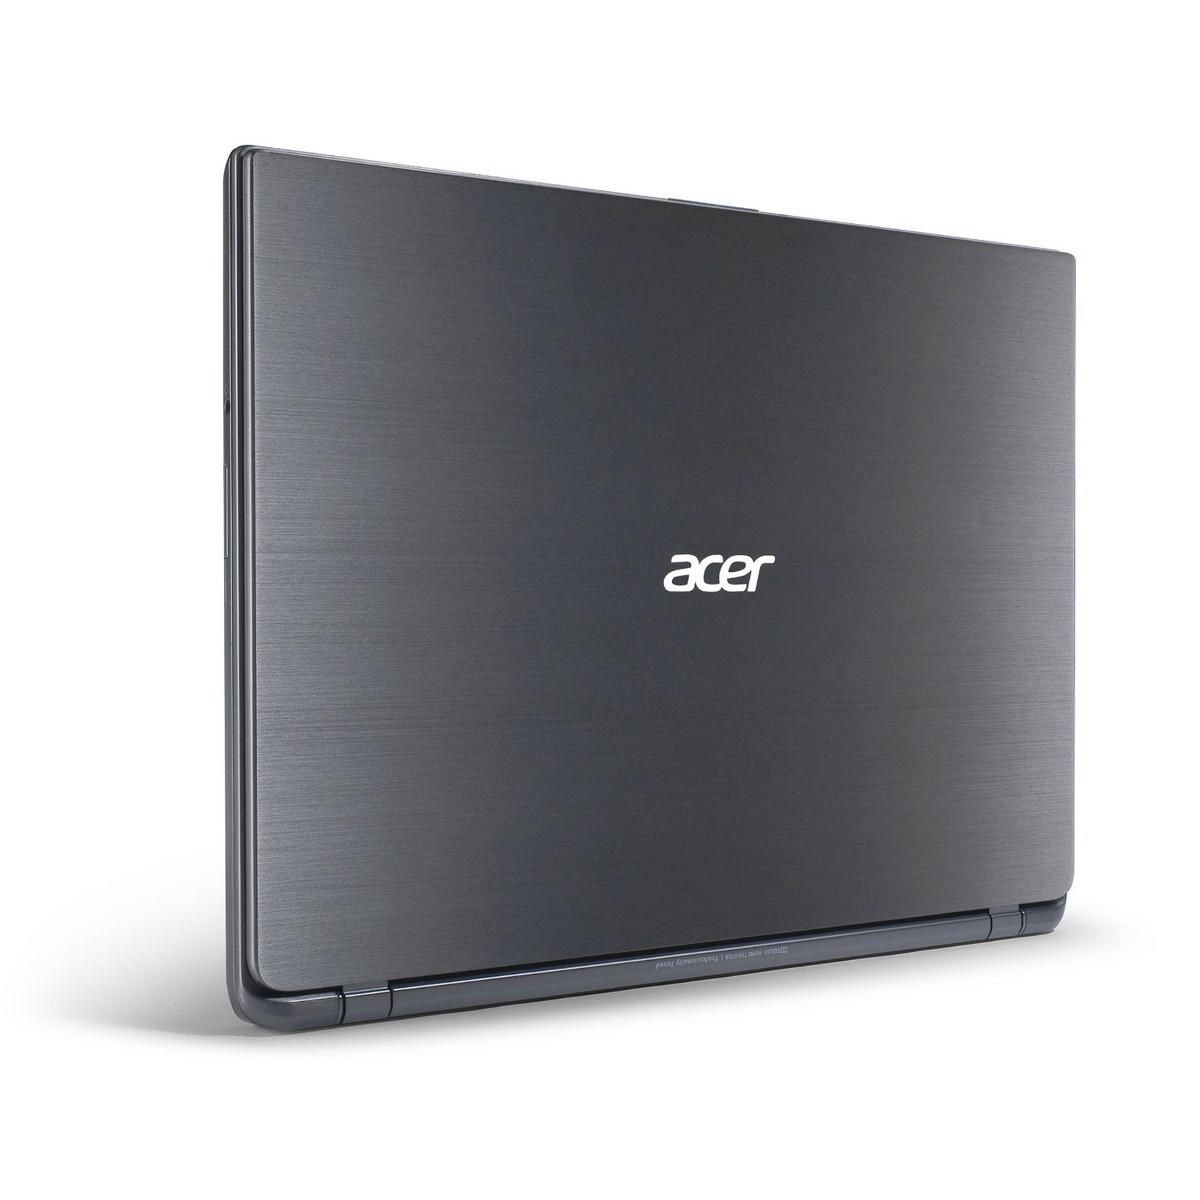 ACER ASPIRE M5-481TG NVIDIA GRAPHICS TREIBER WINDOWS 8